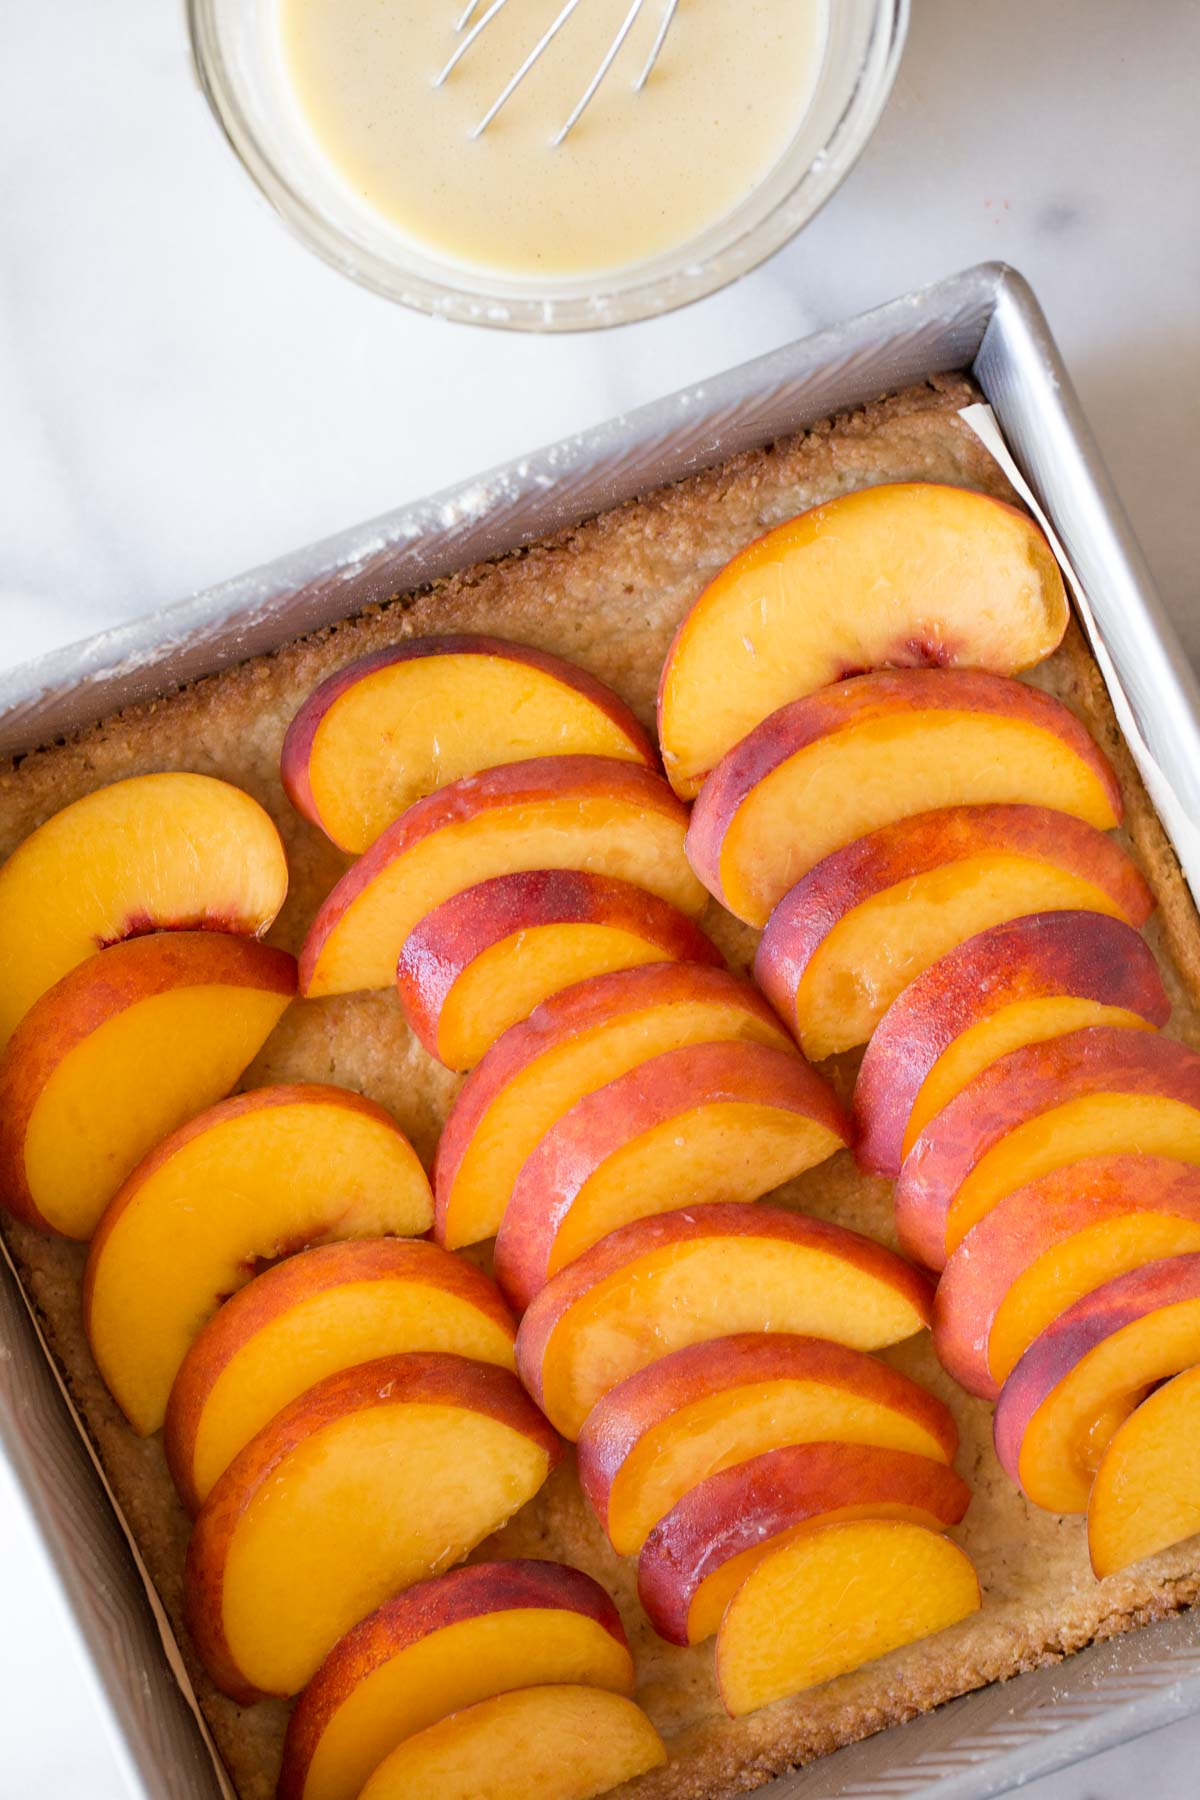 We've got a buttery, almond shortbread crust topped with fresh peaches surrounded by a creamy vanilla custard. These are a tiny taste of heaven my friends.